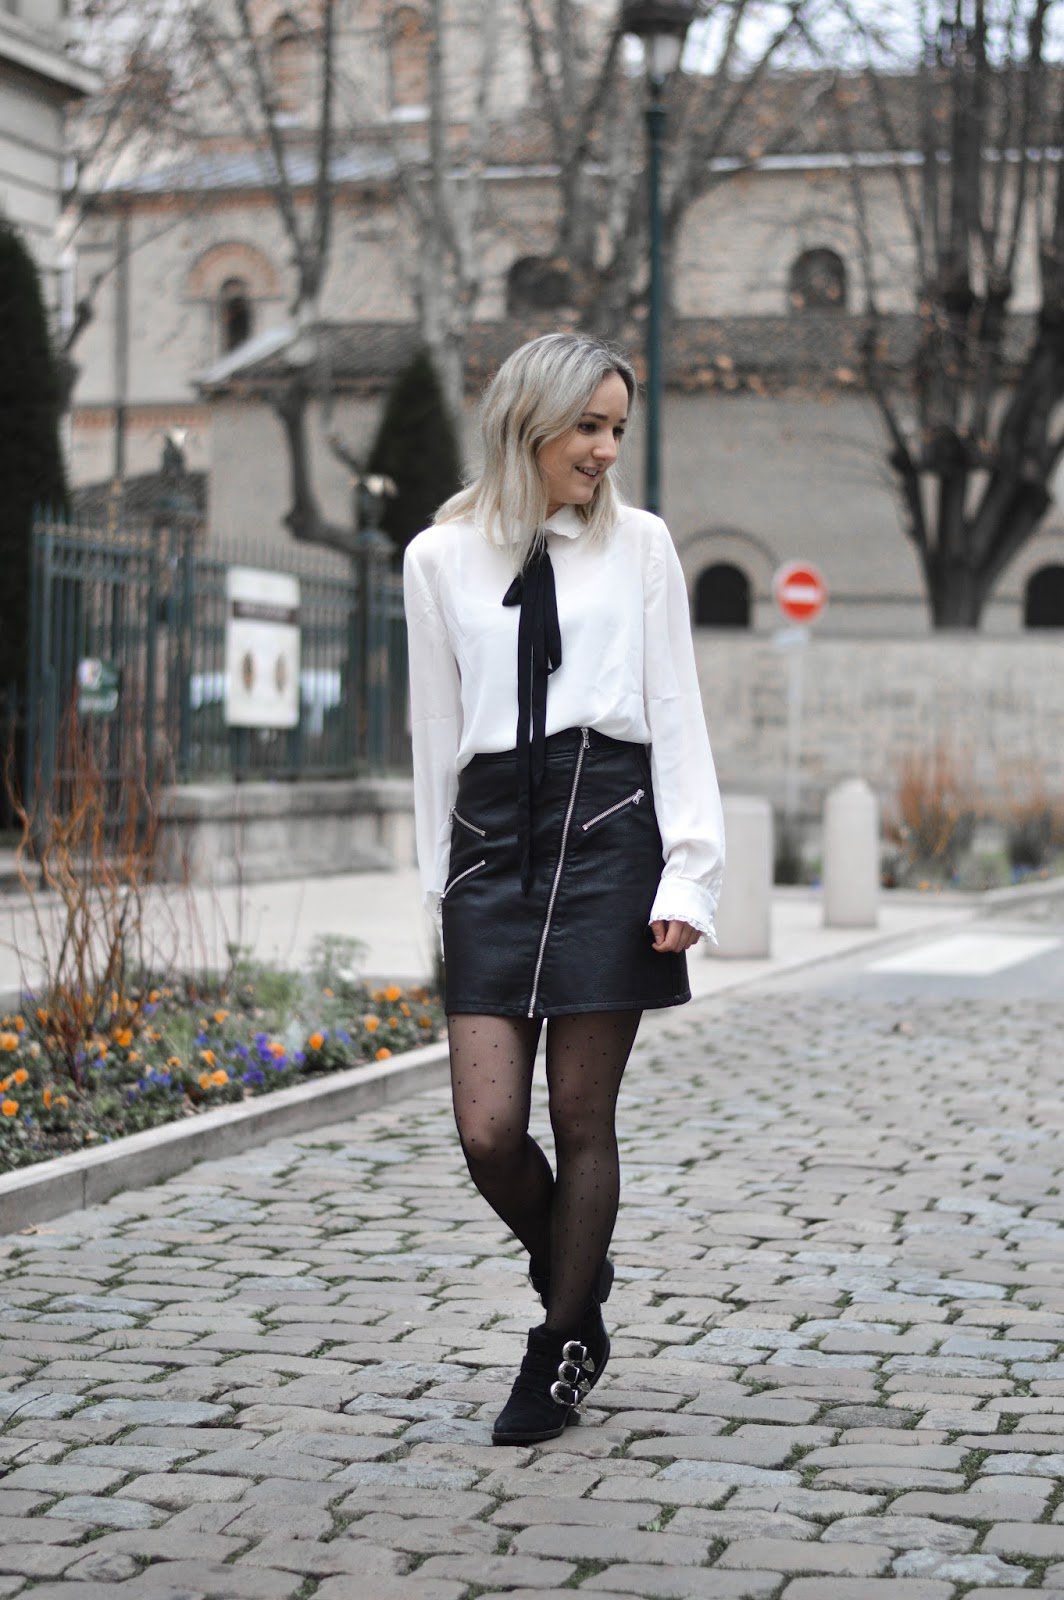 Winter Style Www Jumelle Ln Fr Fashionmylegs The